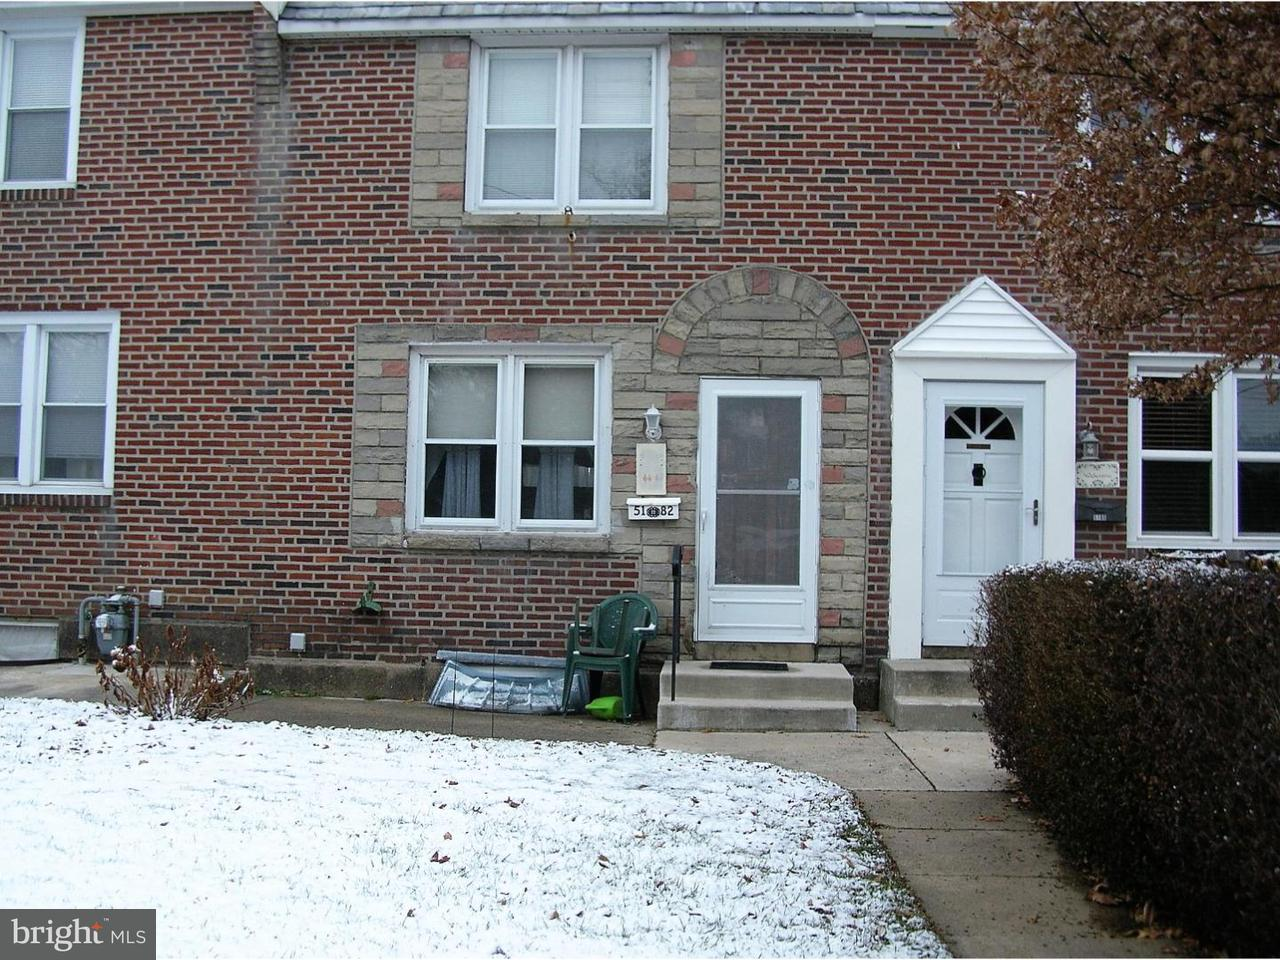 Townhouse for Sale at 5182 WESTLEY Drive Clifton Heights, Pennsylvania 19018 United States